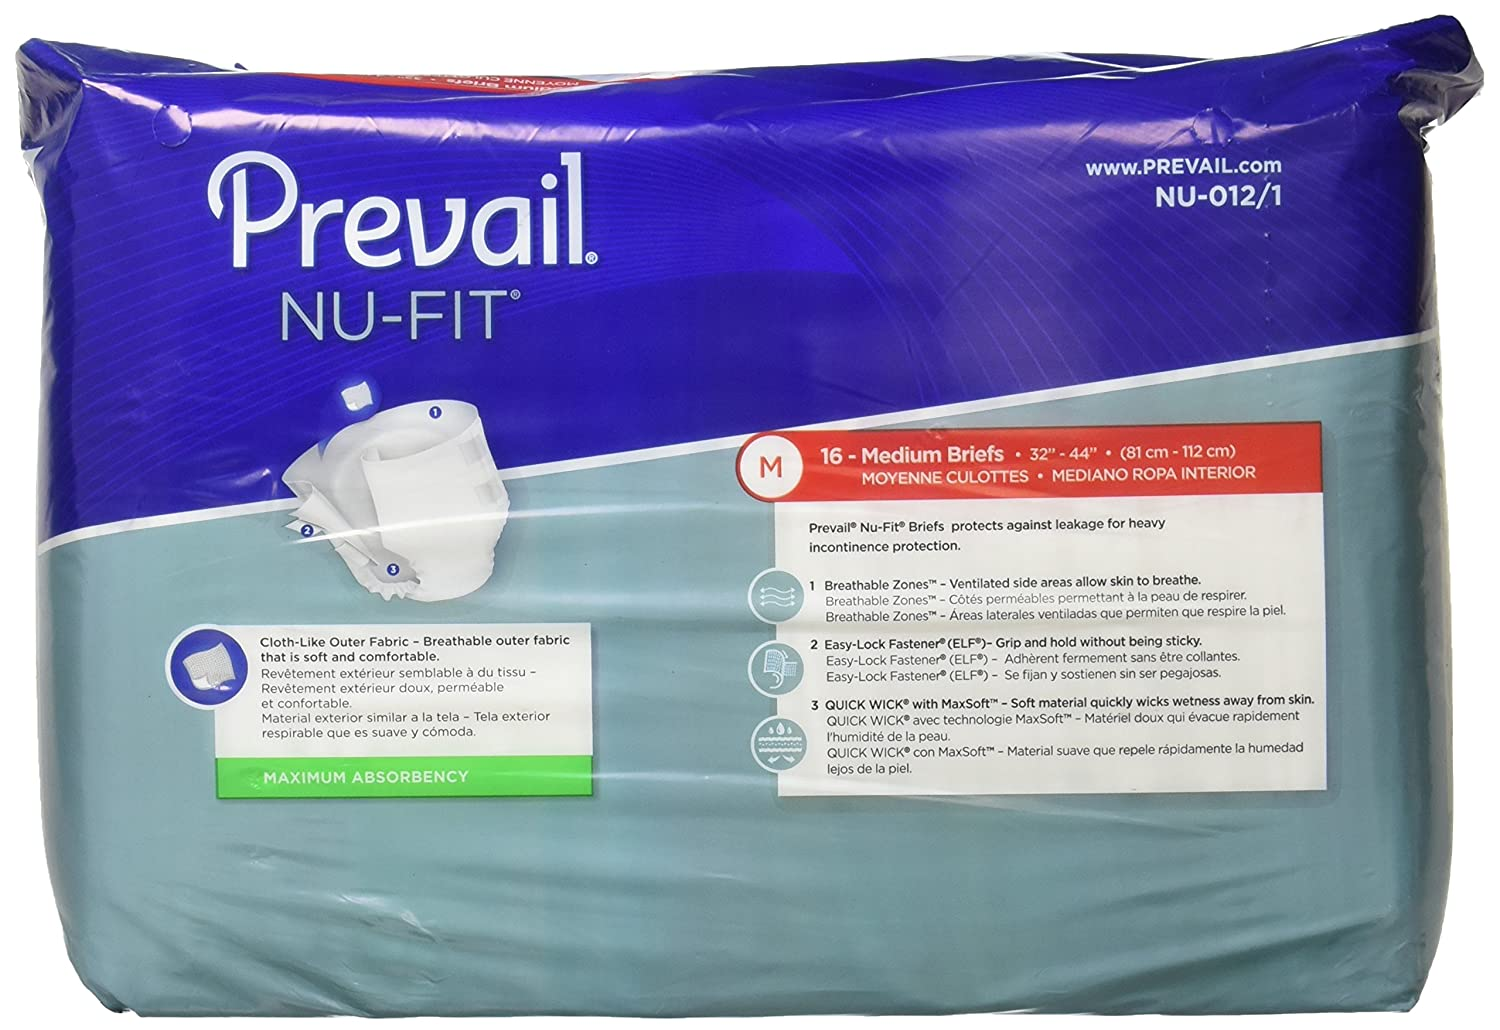 Amazon.com: Prevail Nu-Fit Adult Diapers, Medium, 16 Count: Health & Personal Care